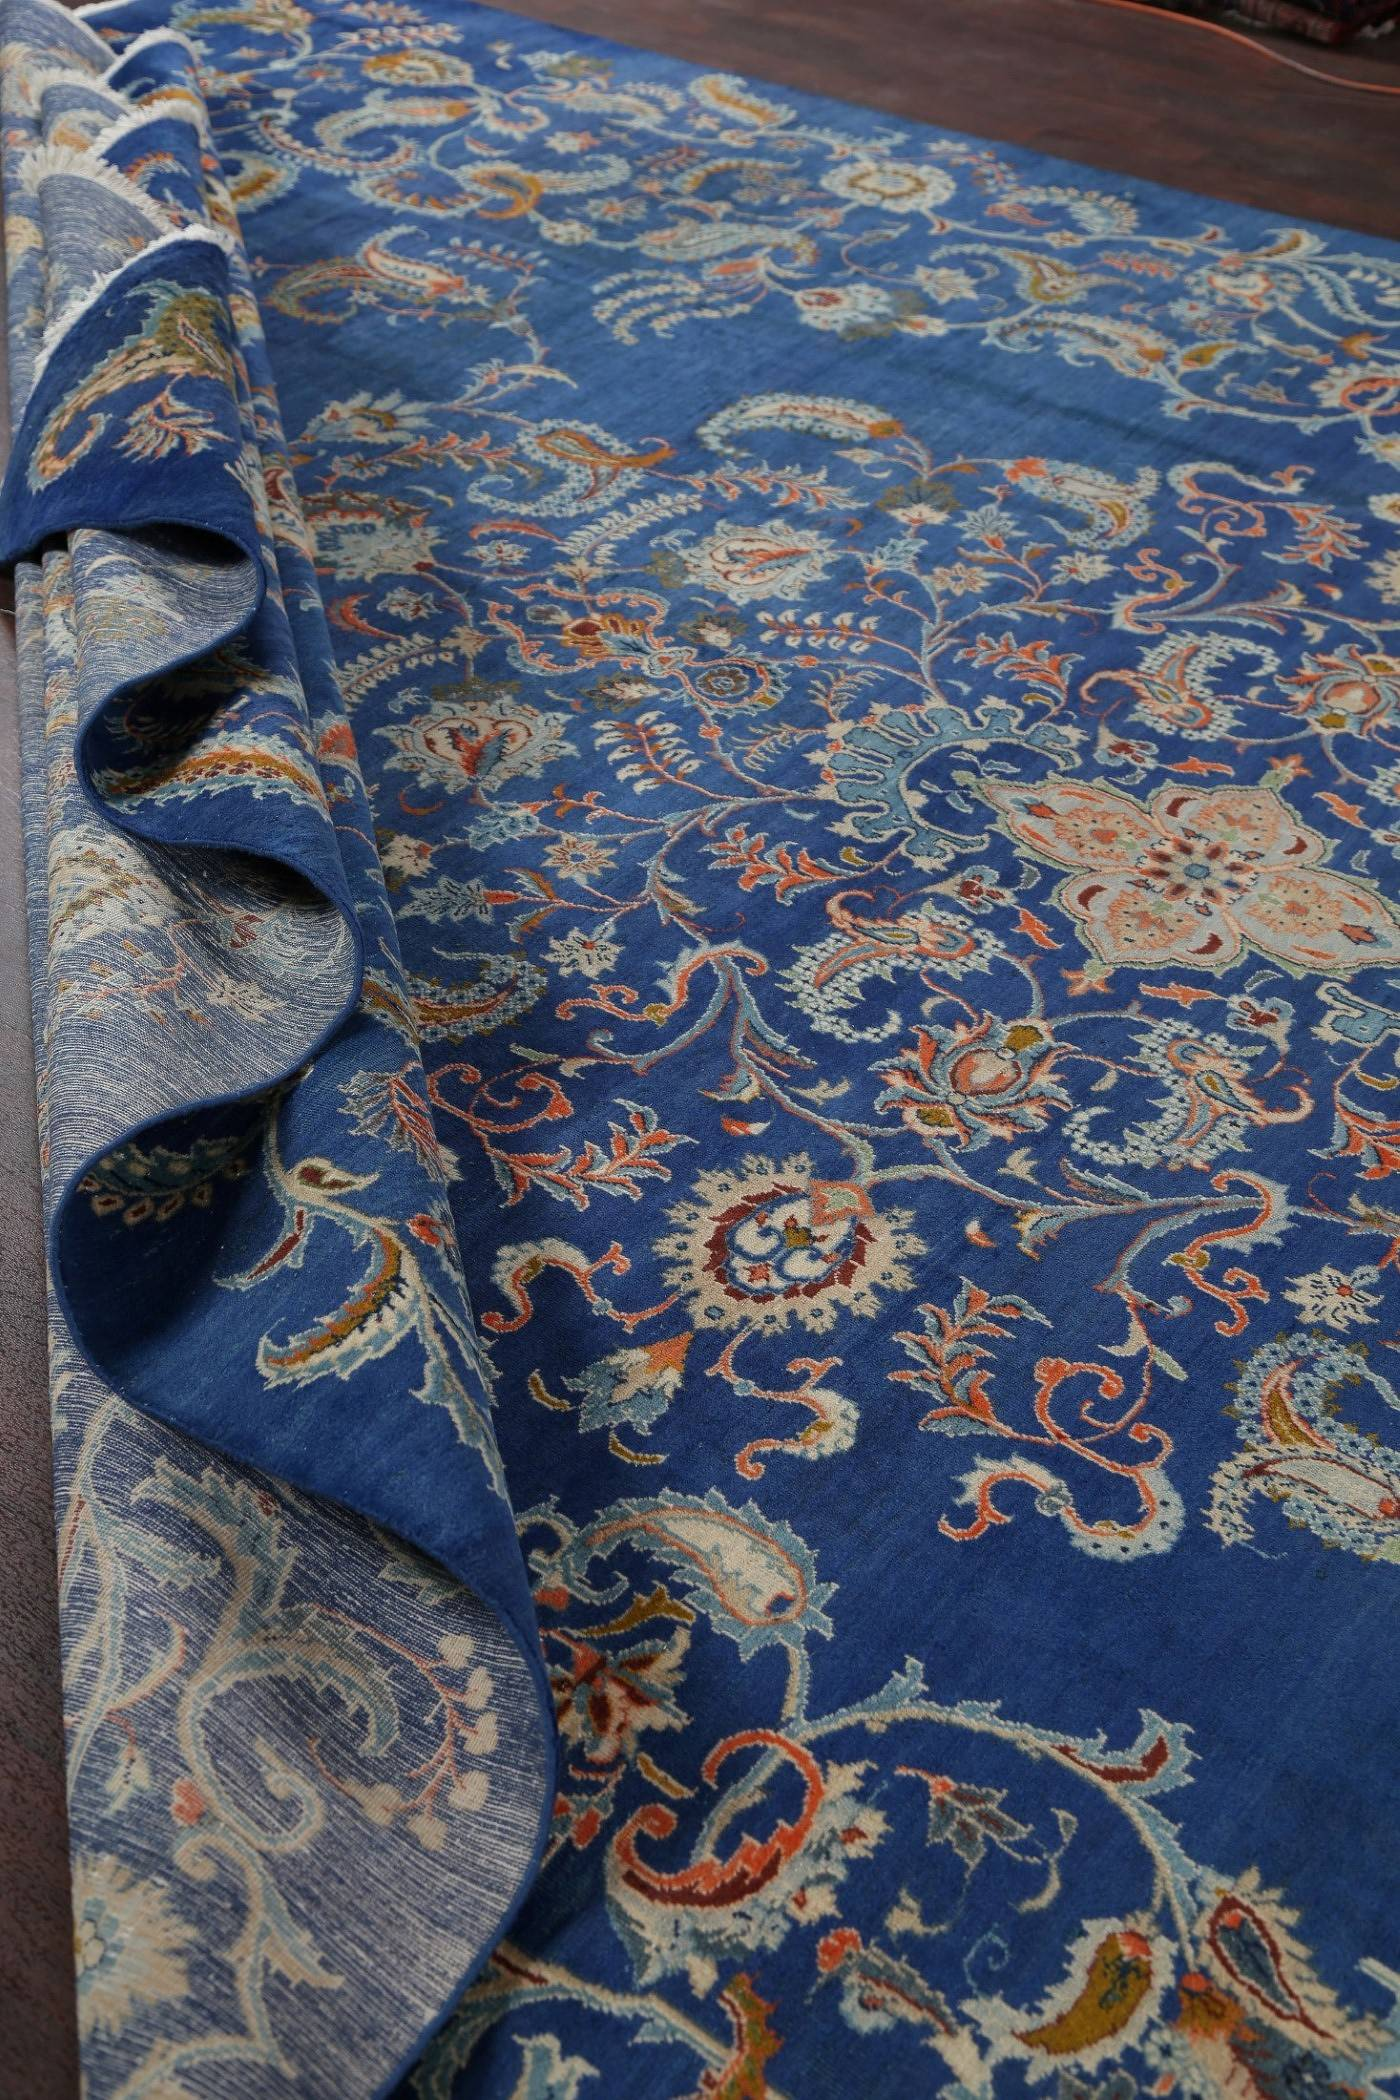 One-of-a-Kind Antique Sapphire Blue Floral Kashan Persian Hand-Knotted 11x18 Wool Rug